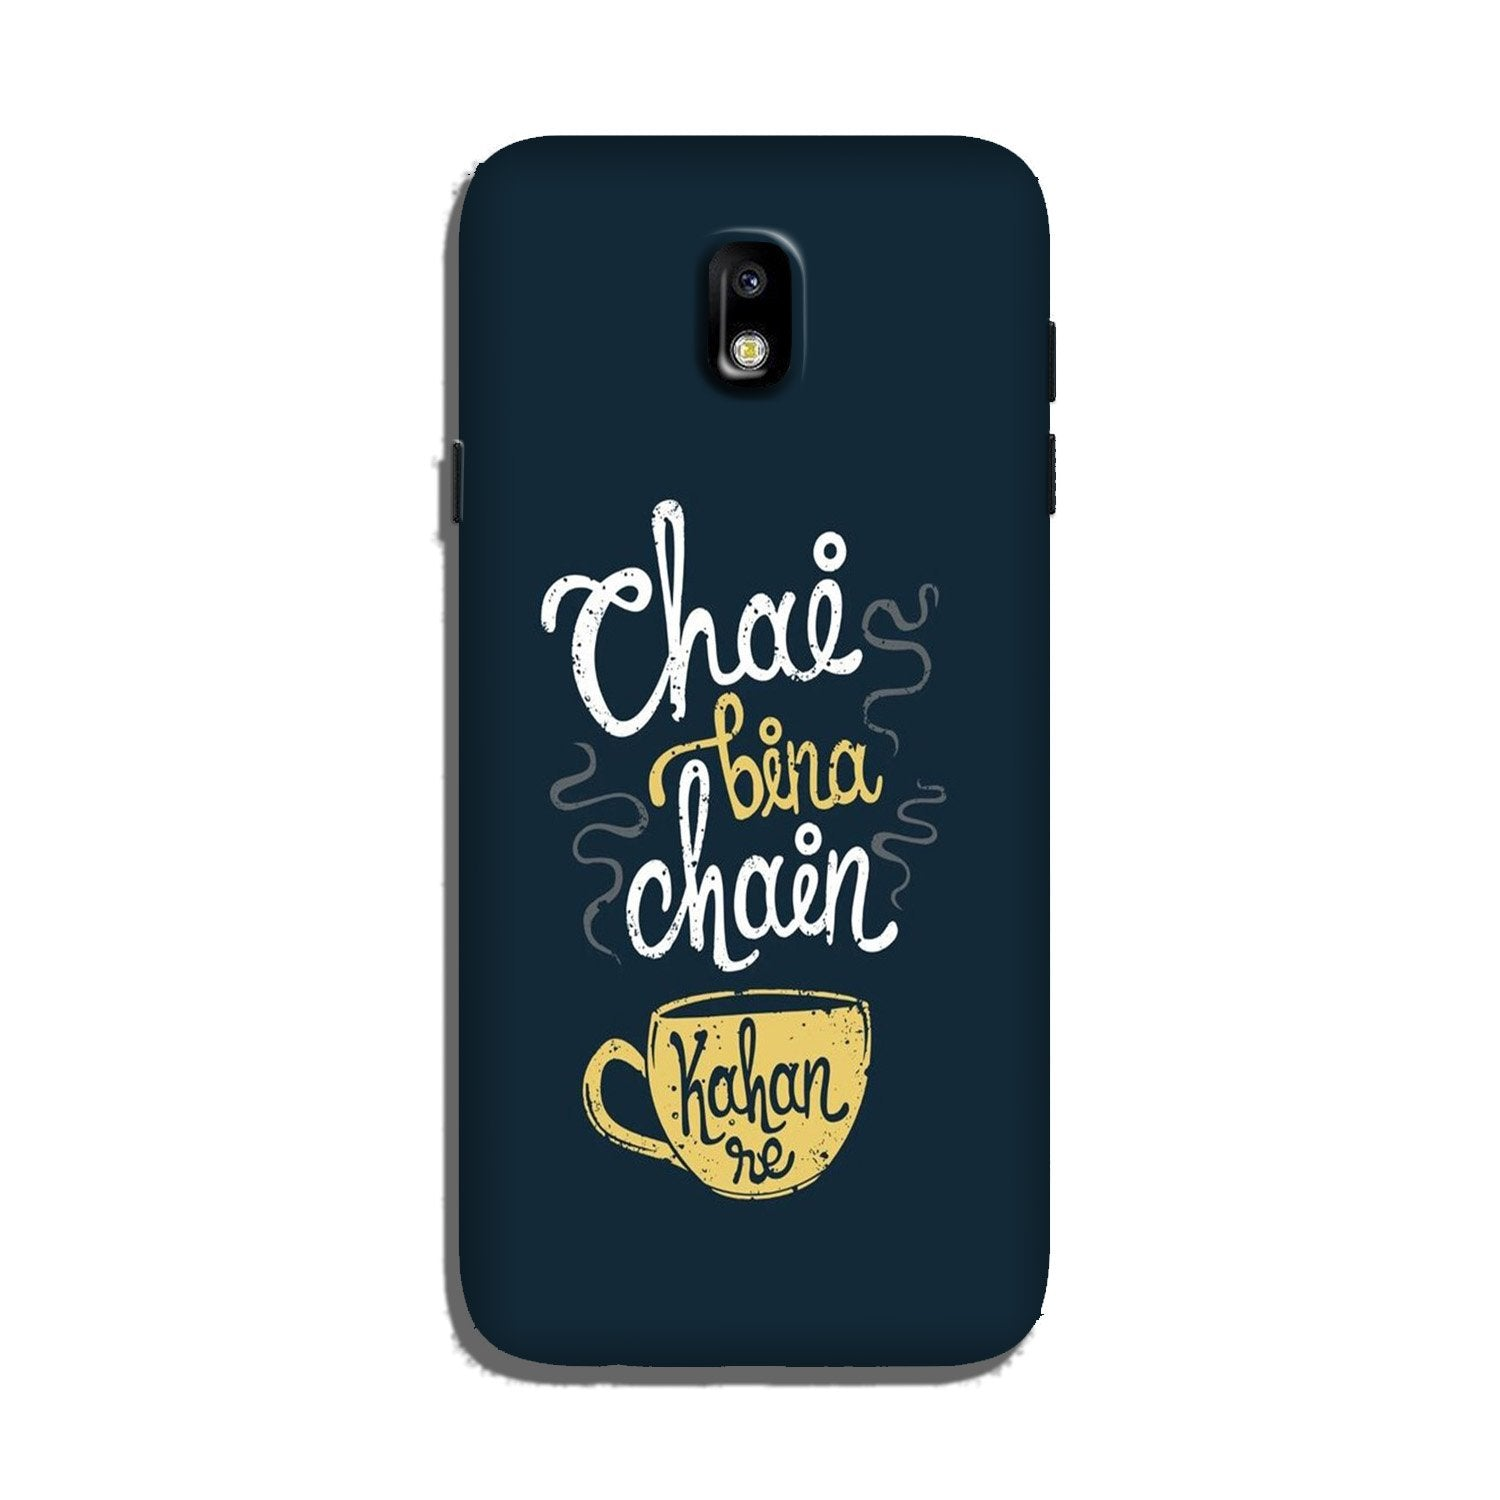 Chai Bina Chain Kahan Case for Galaxy J7 Pro  (Design - 144)